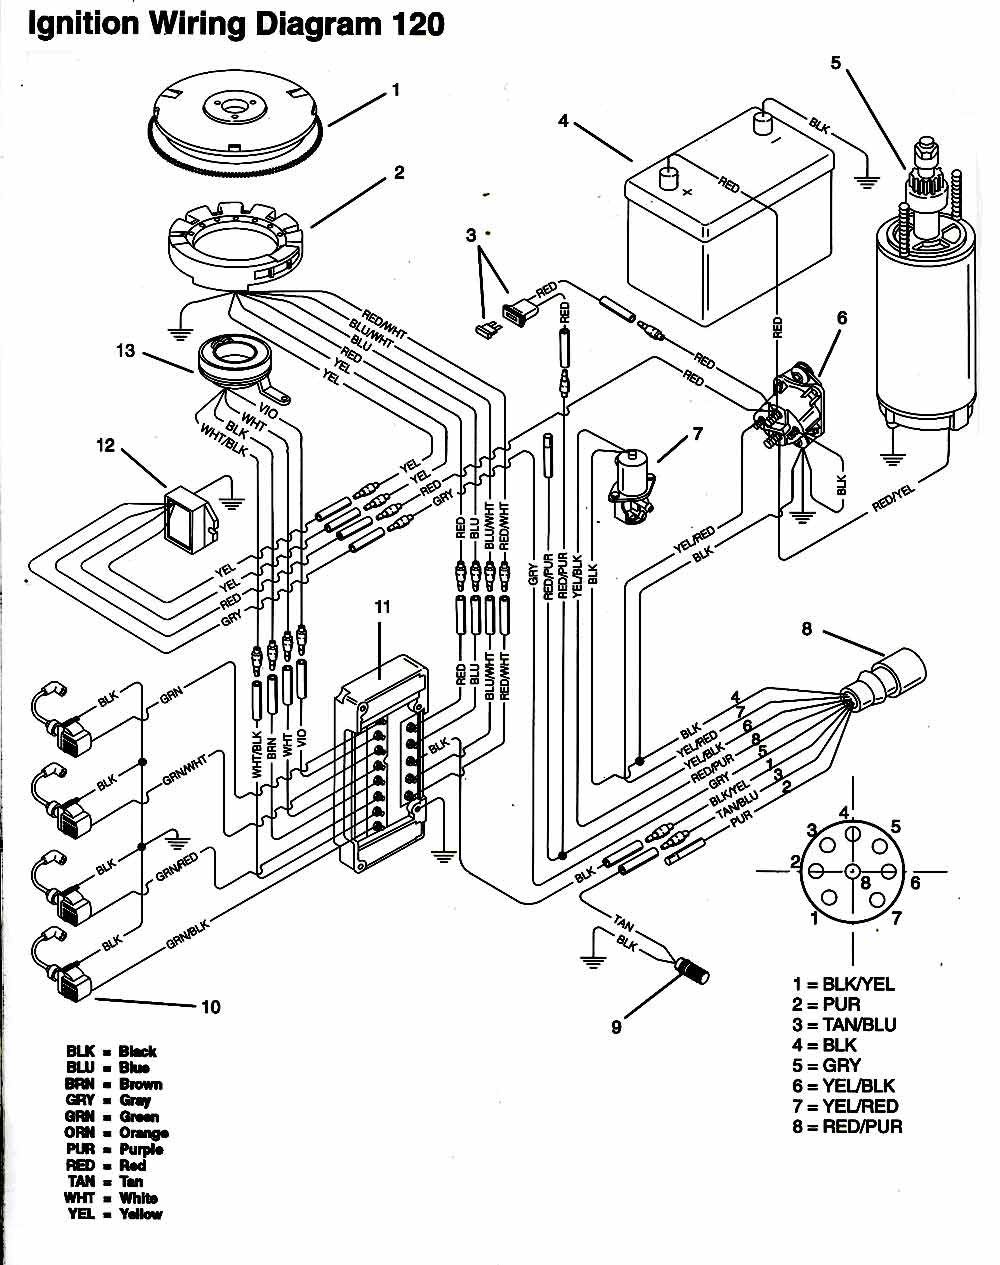 schematic 1995 mercury 115 outboard trusted wiring diagrams 35 hp mercury  outboard wiring schematic 1995 mercury